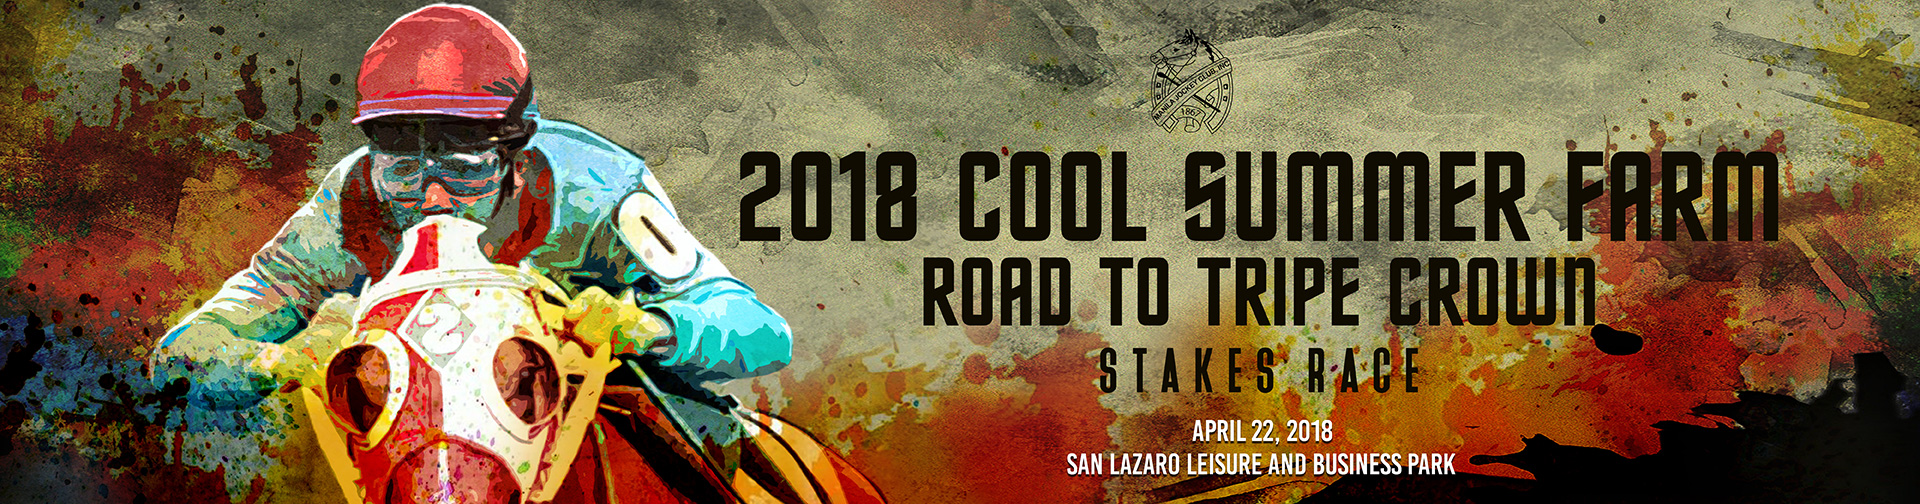 2018 COOL SUMMER FARM ROAD TO TRIPLE CROWN